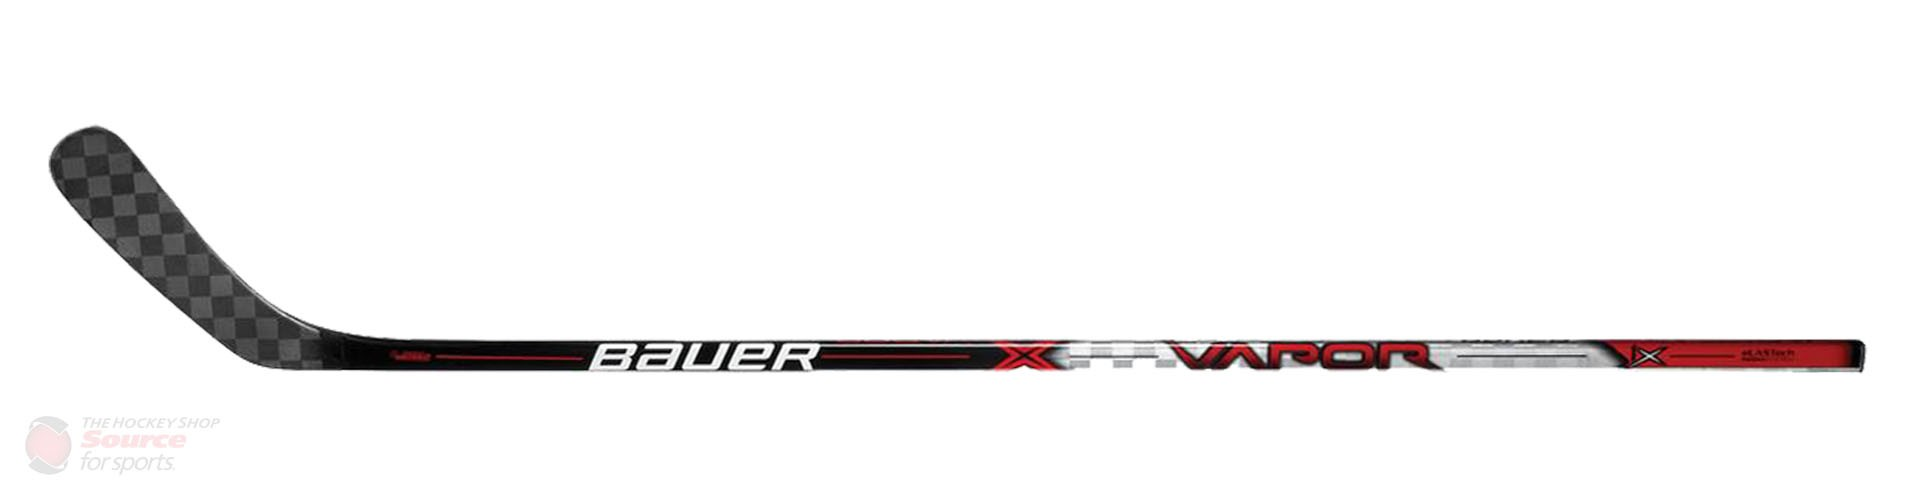 The Bauer Vapor 1X LE